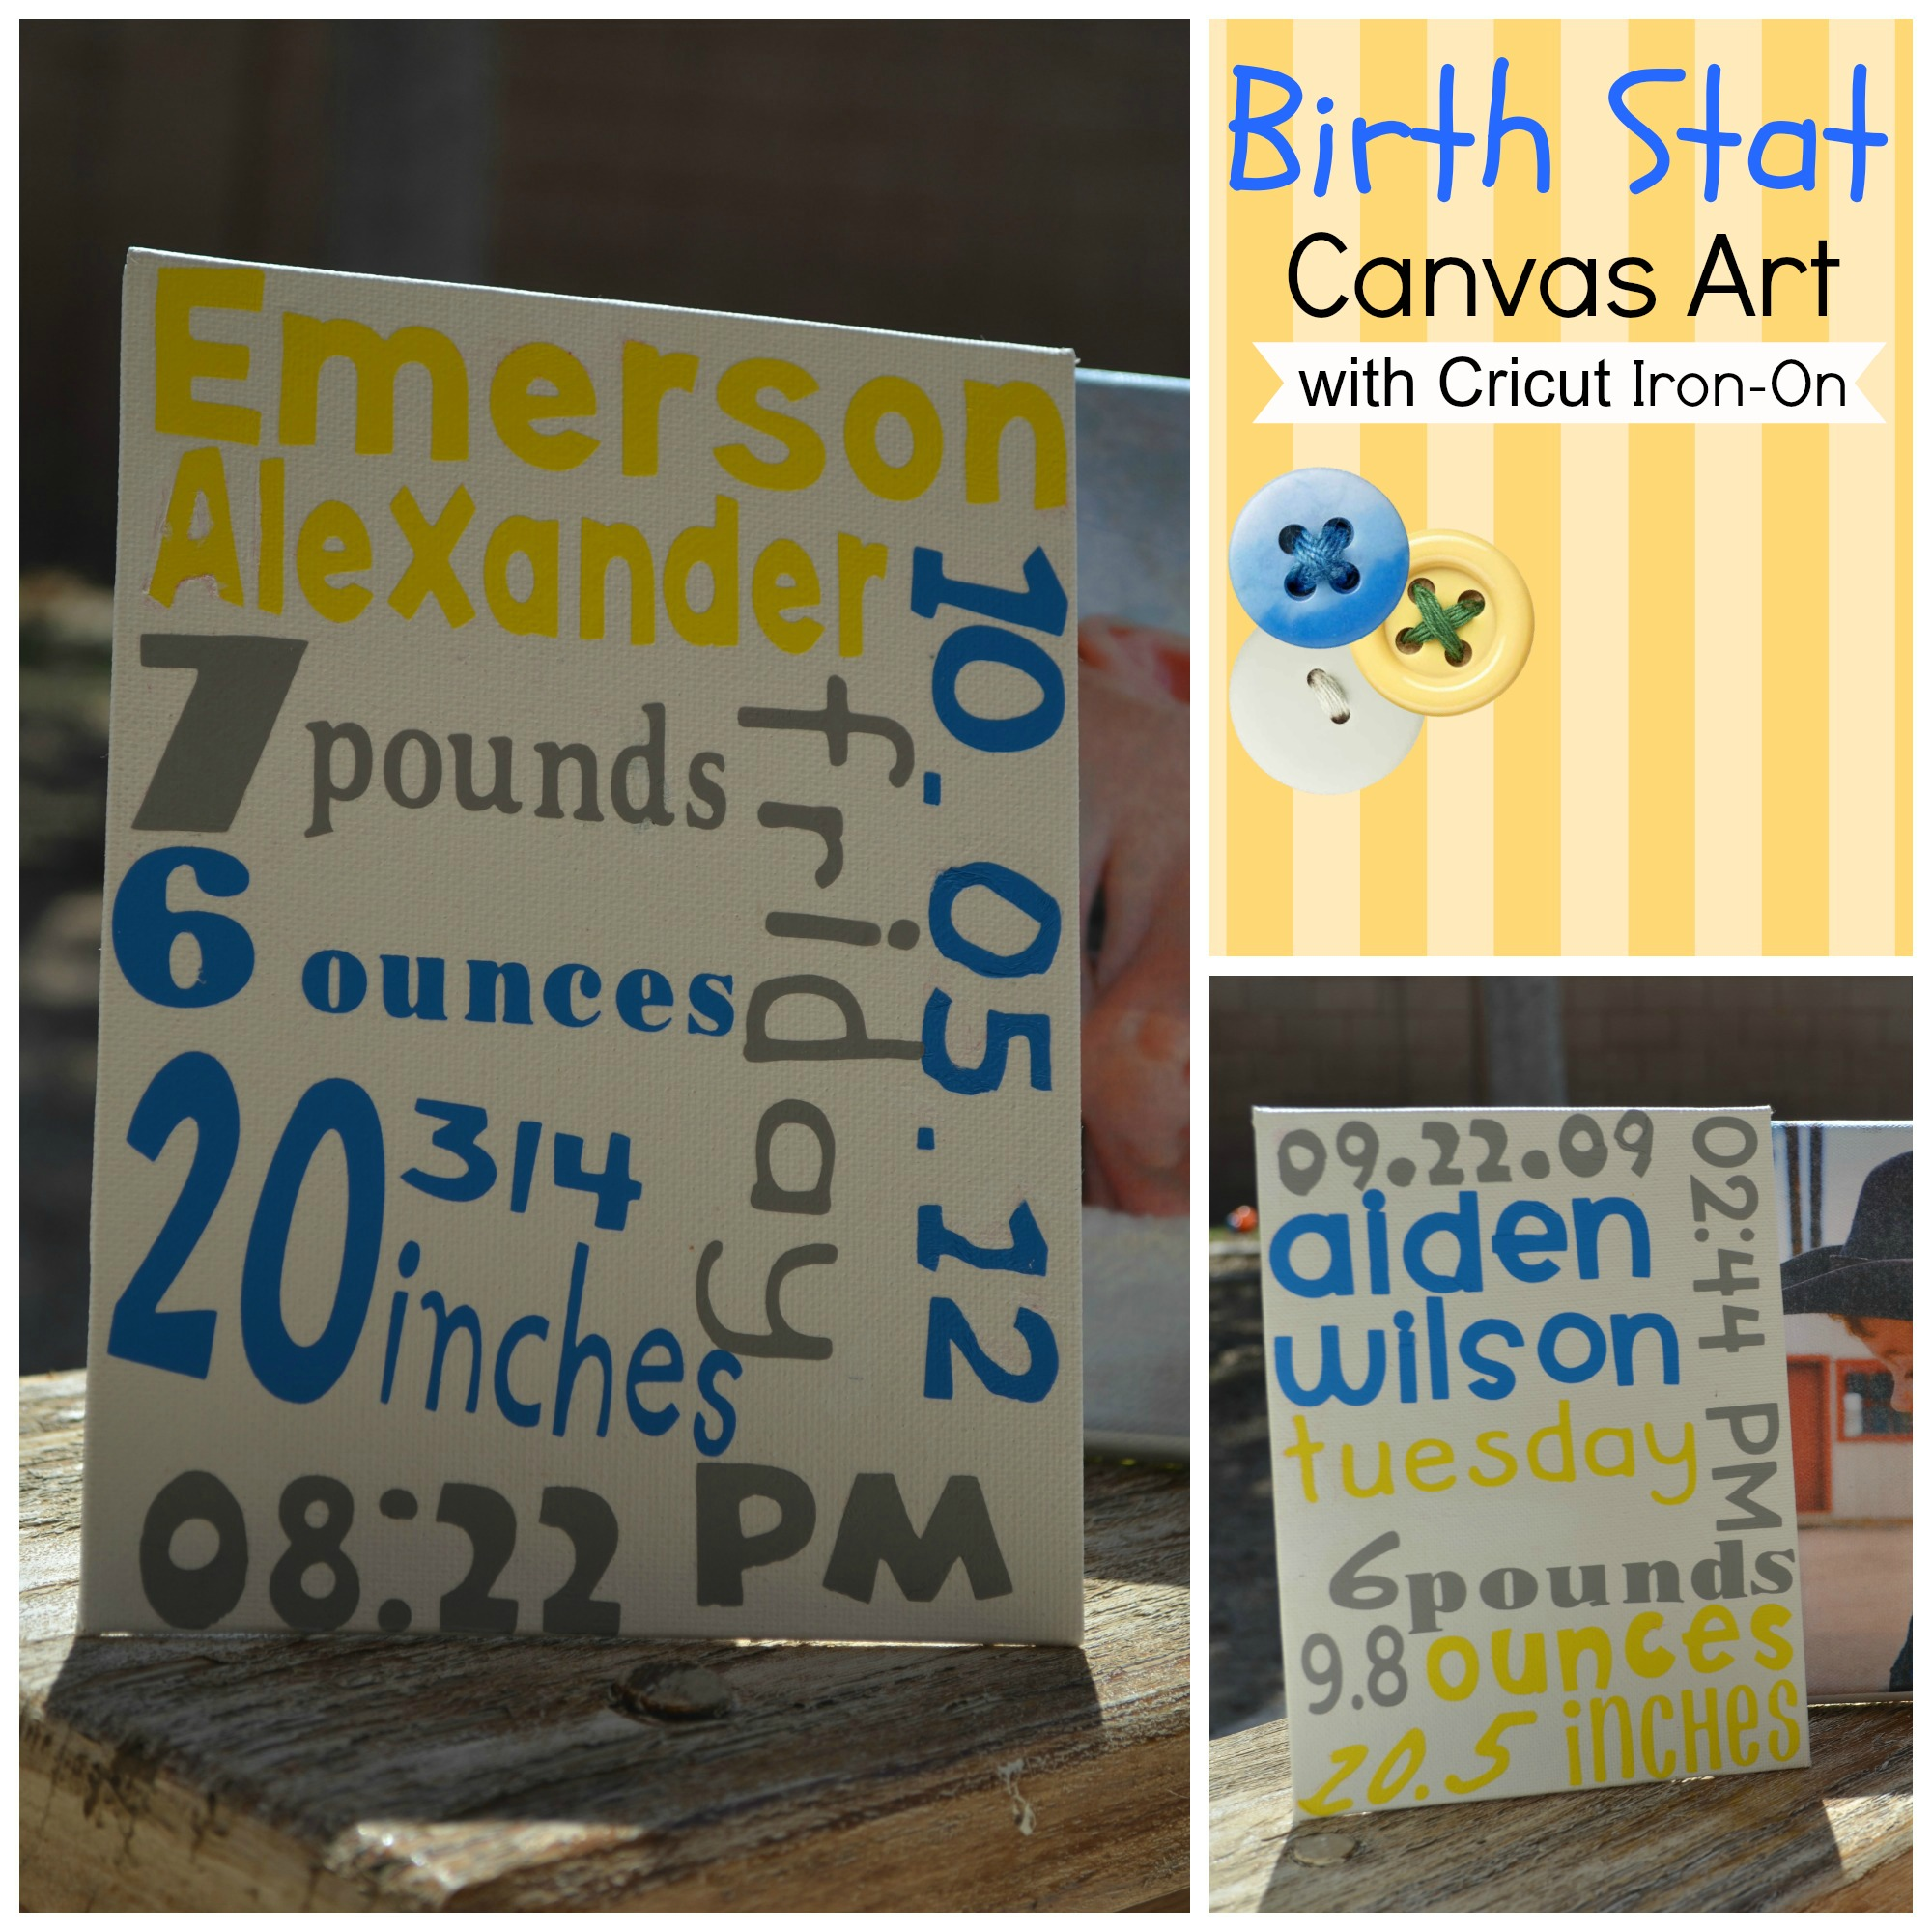 Eclectic Momsense- Birth Stat Canvas Art with Cricut Iron-On